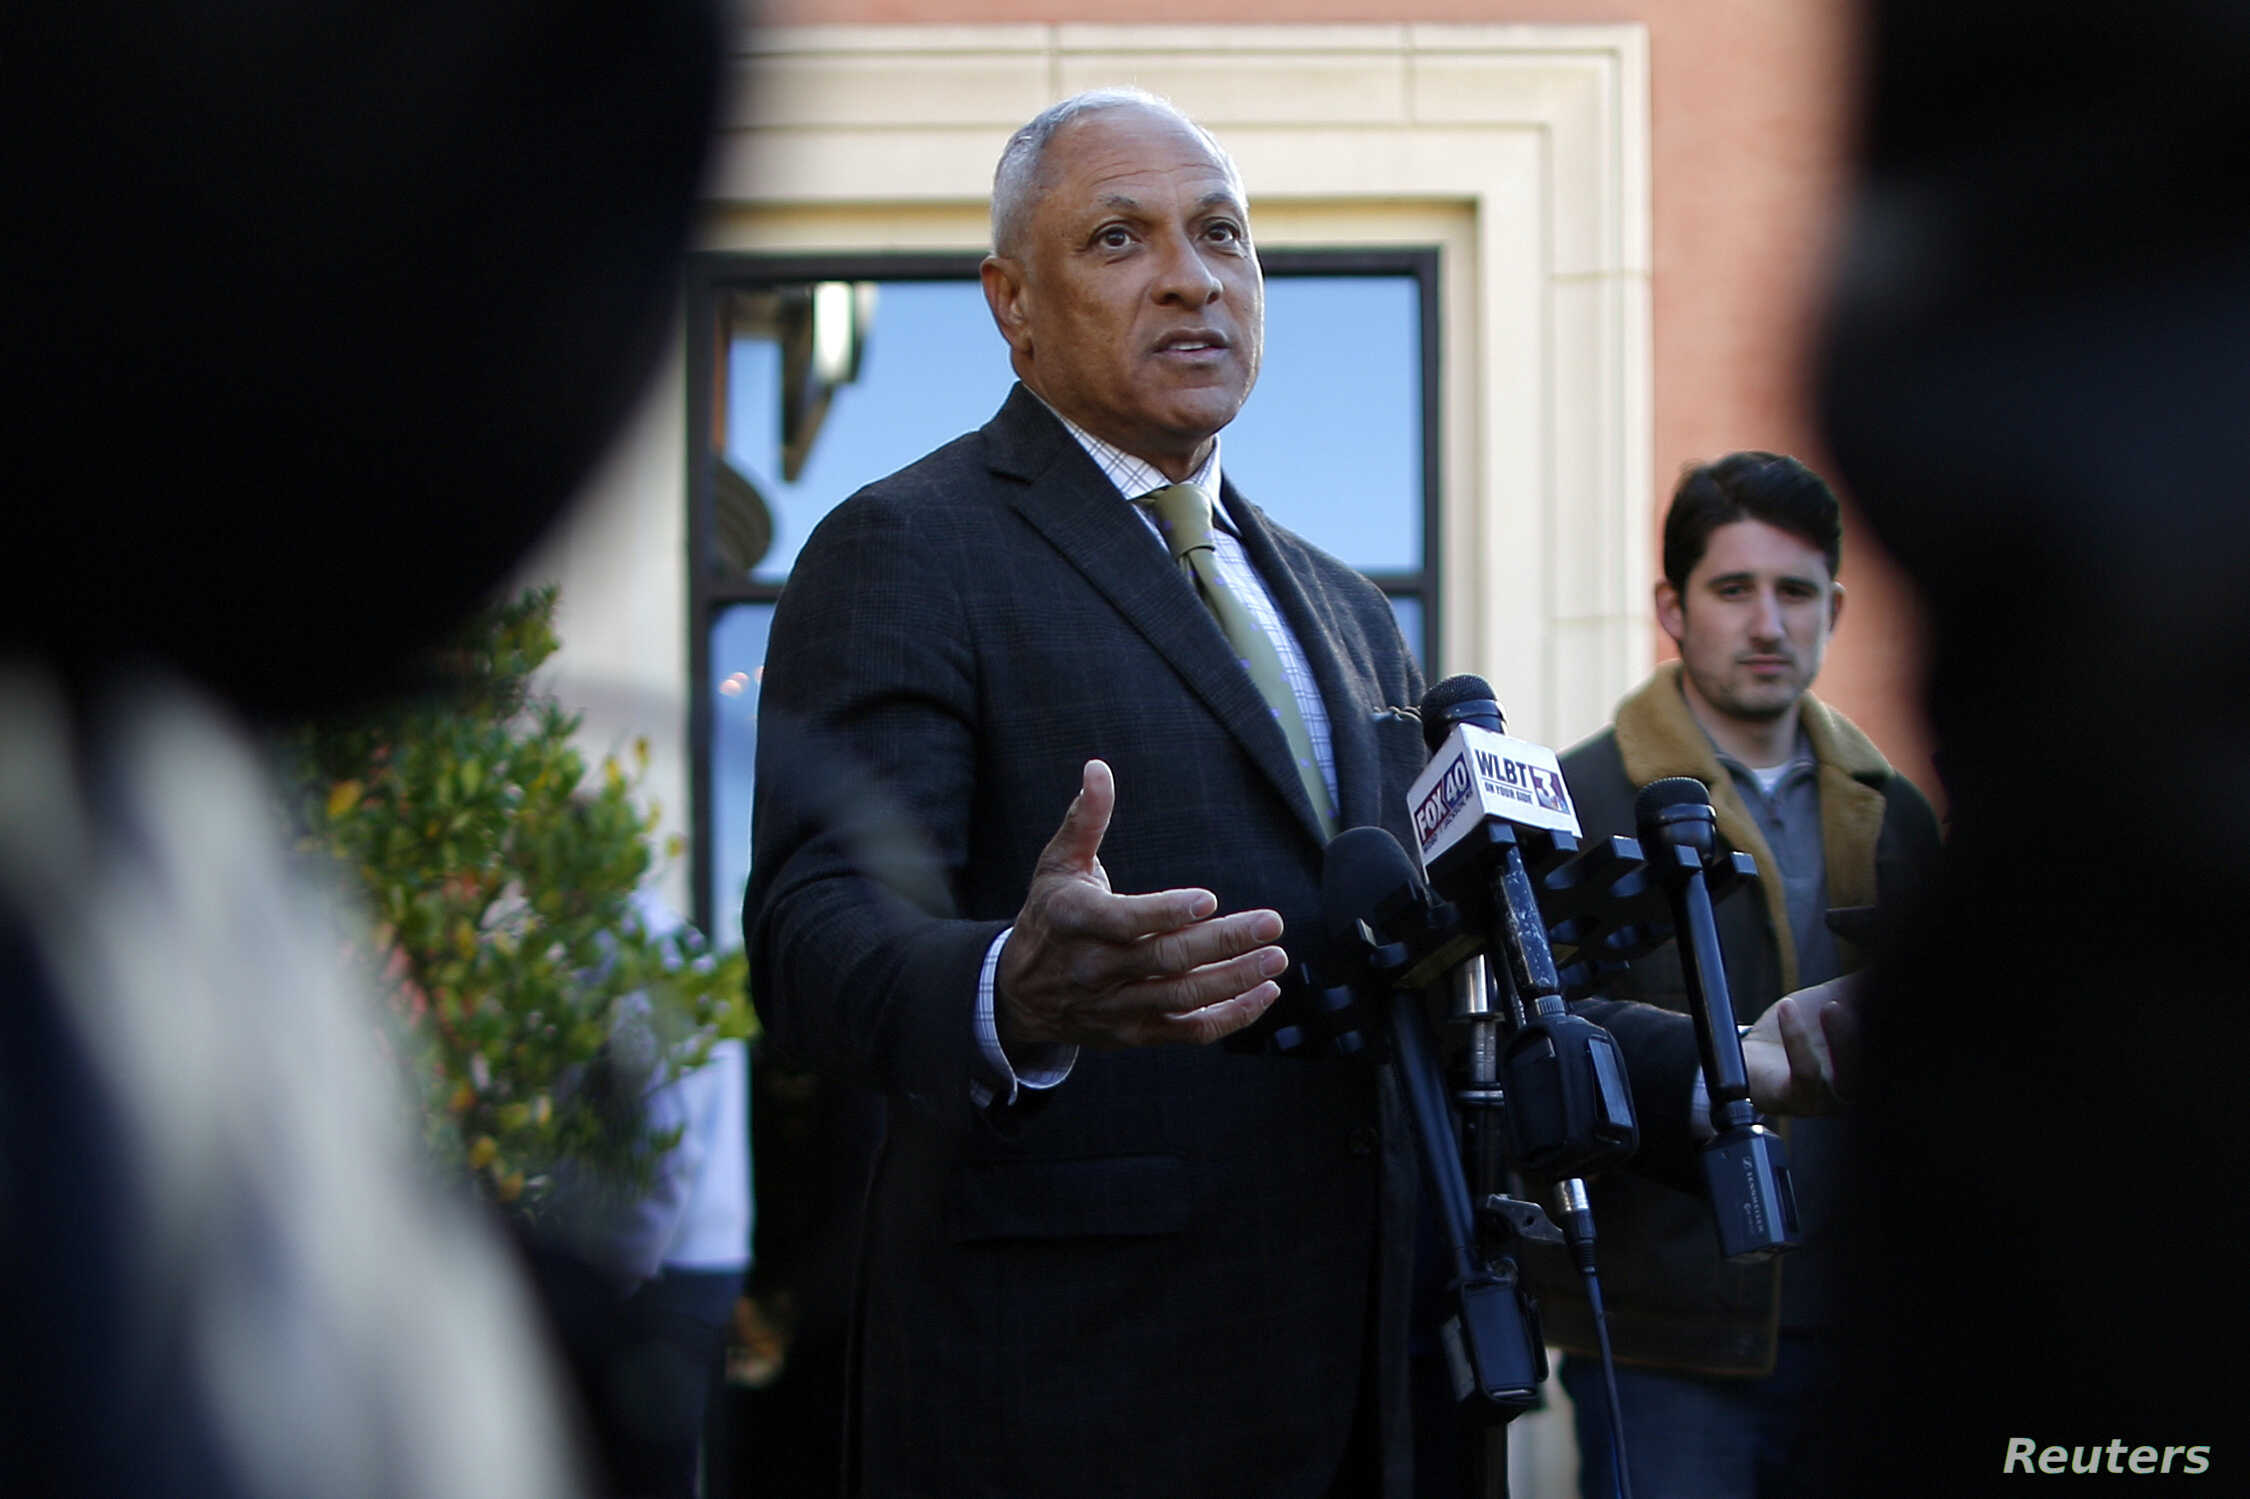 U.S. Senate candidate Mike Espy takes an interview with media during a news conference in Jackson, Mississippi, Nov. 26, 2018.